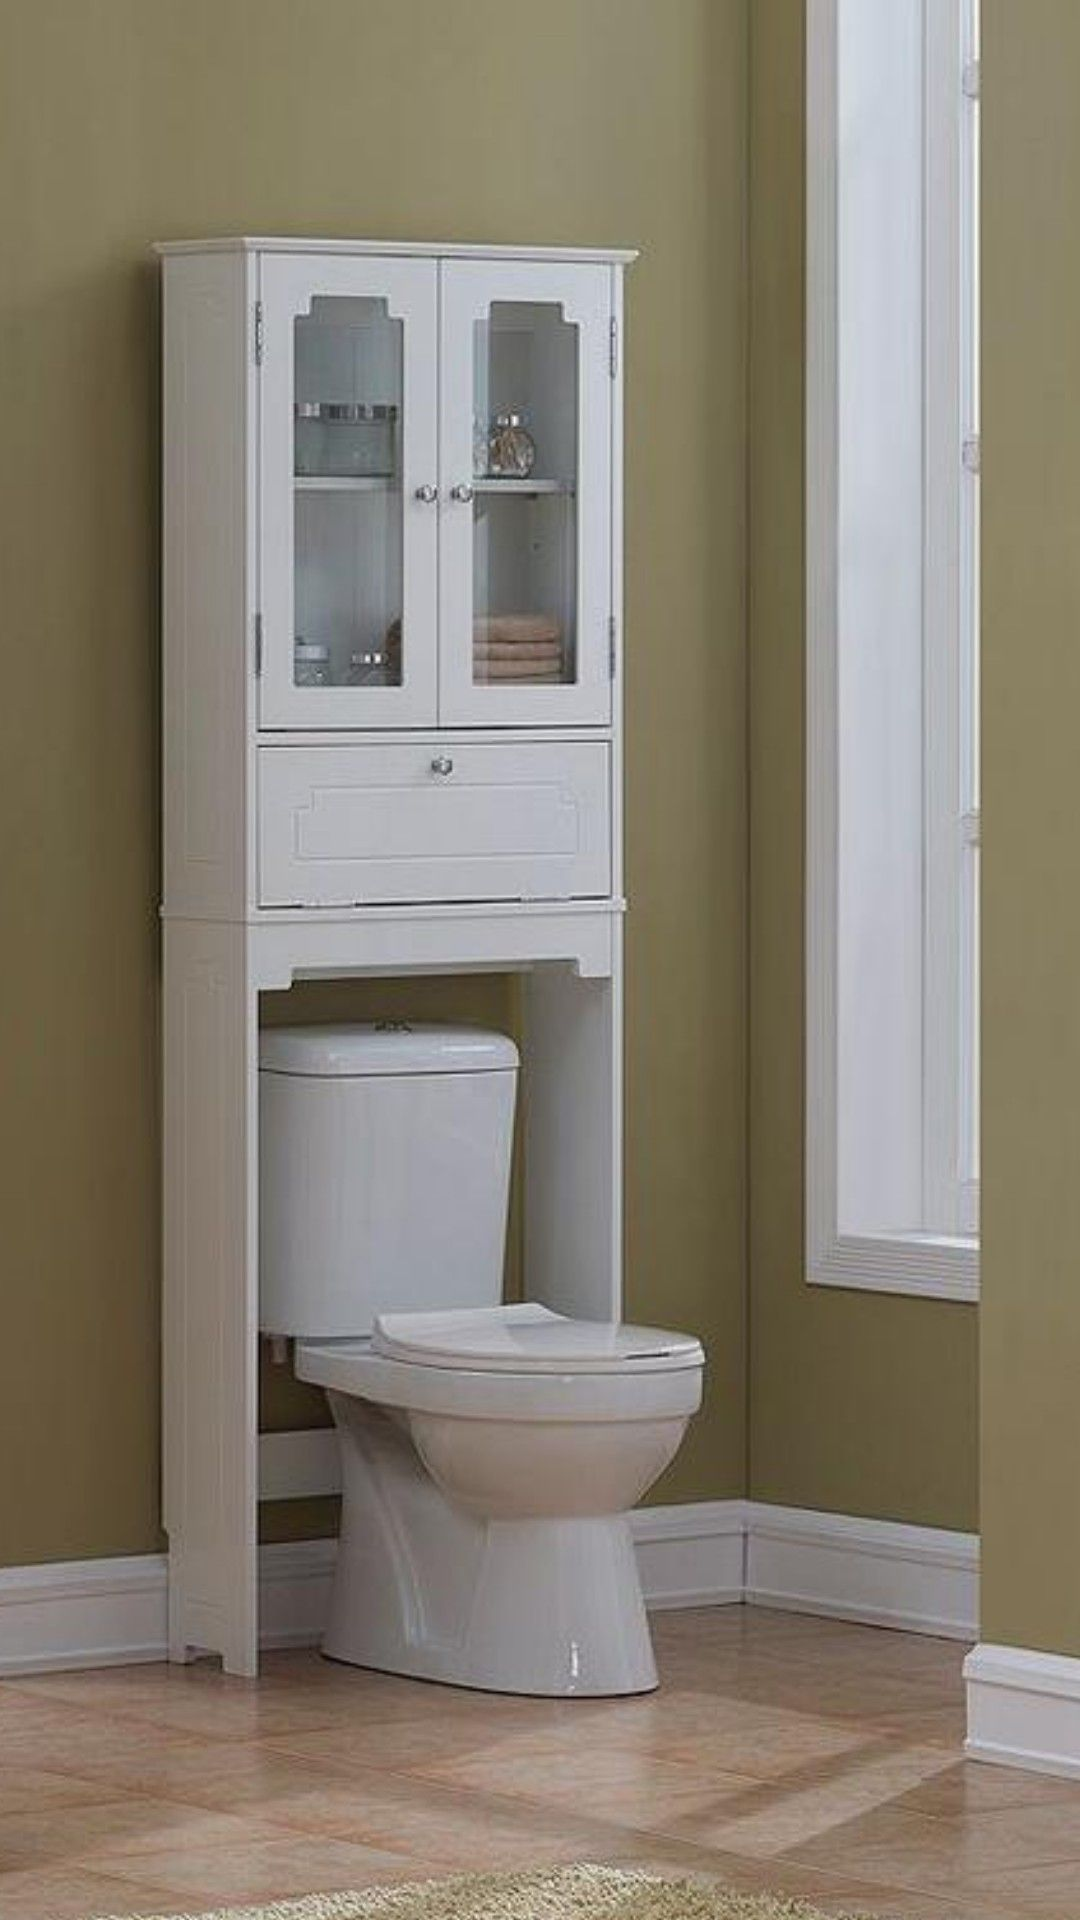 Runfine Etagere Fits Over Any Standard Toilet To Optimize Your